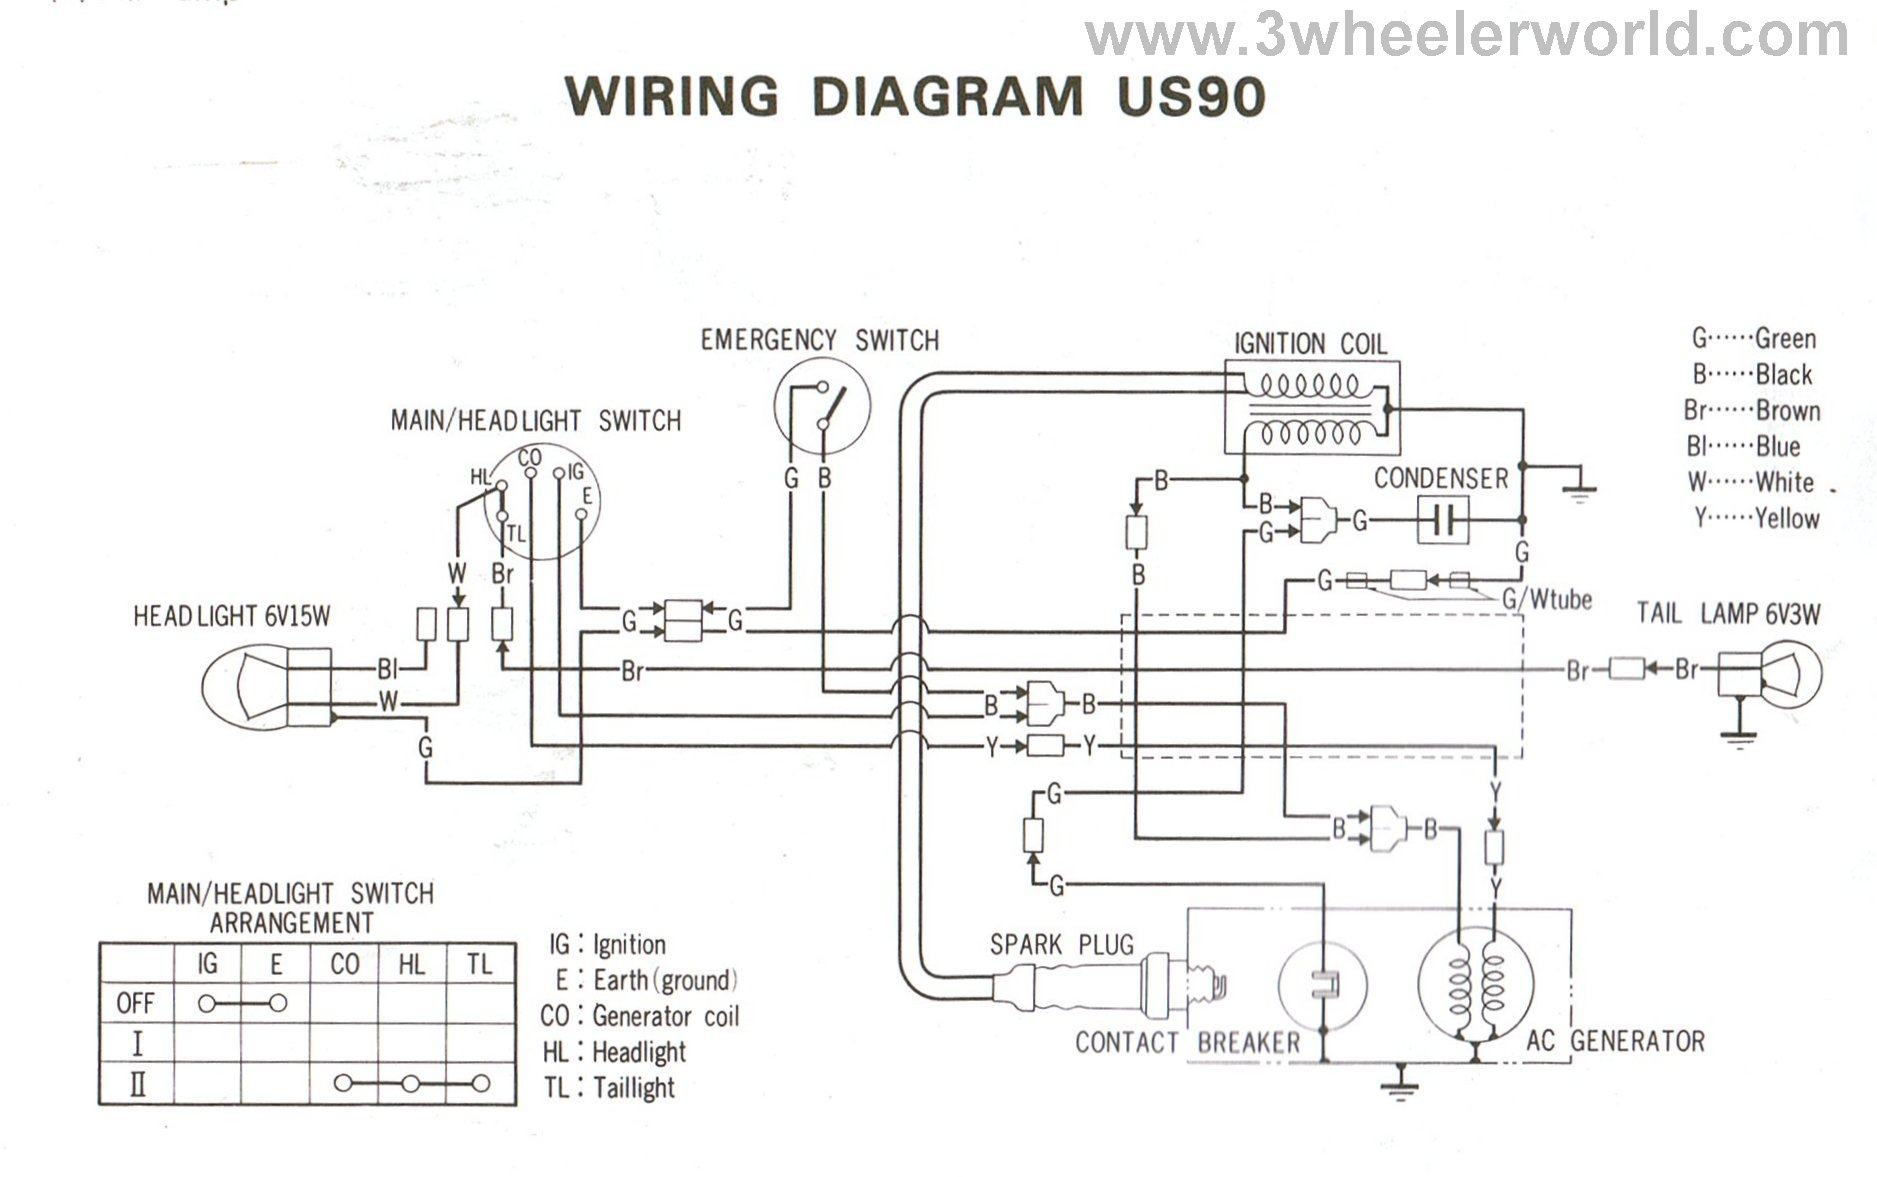 3 WHeeLeR WoRLD-Tech Help Honda Wiring Diagrams on atc trailer accessories, atc trailer parts, atc trailer brochure, atc electrical diagram,